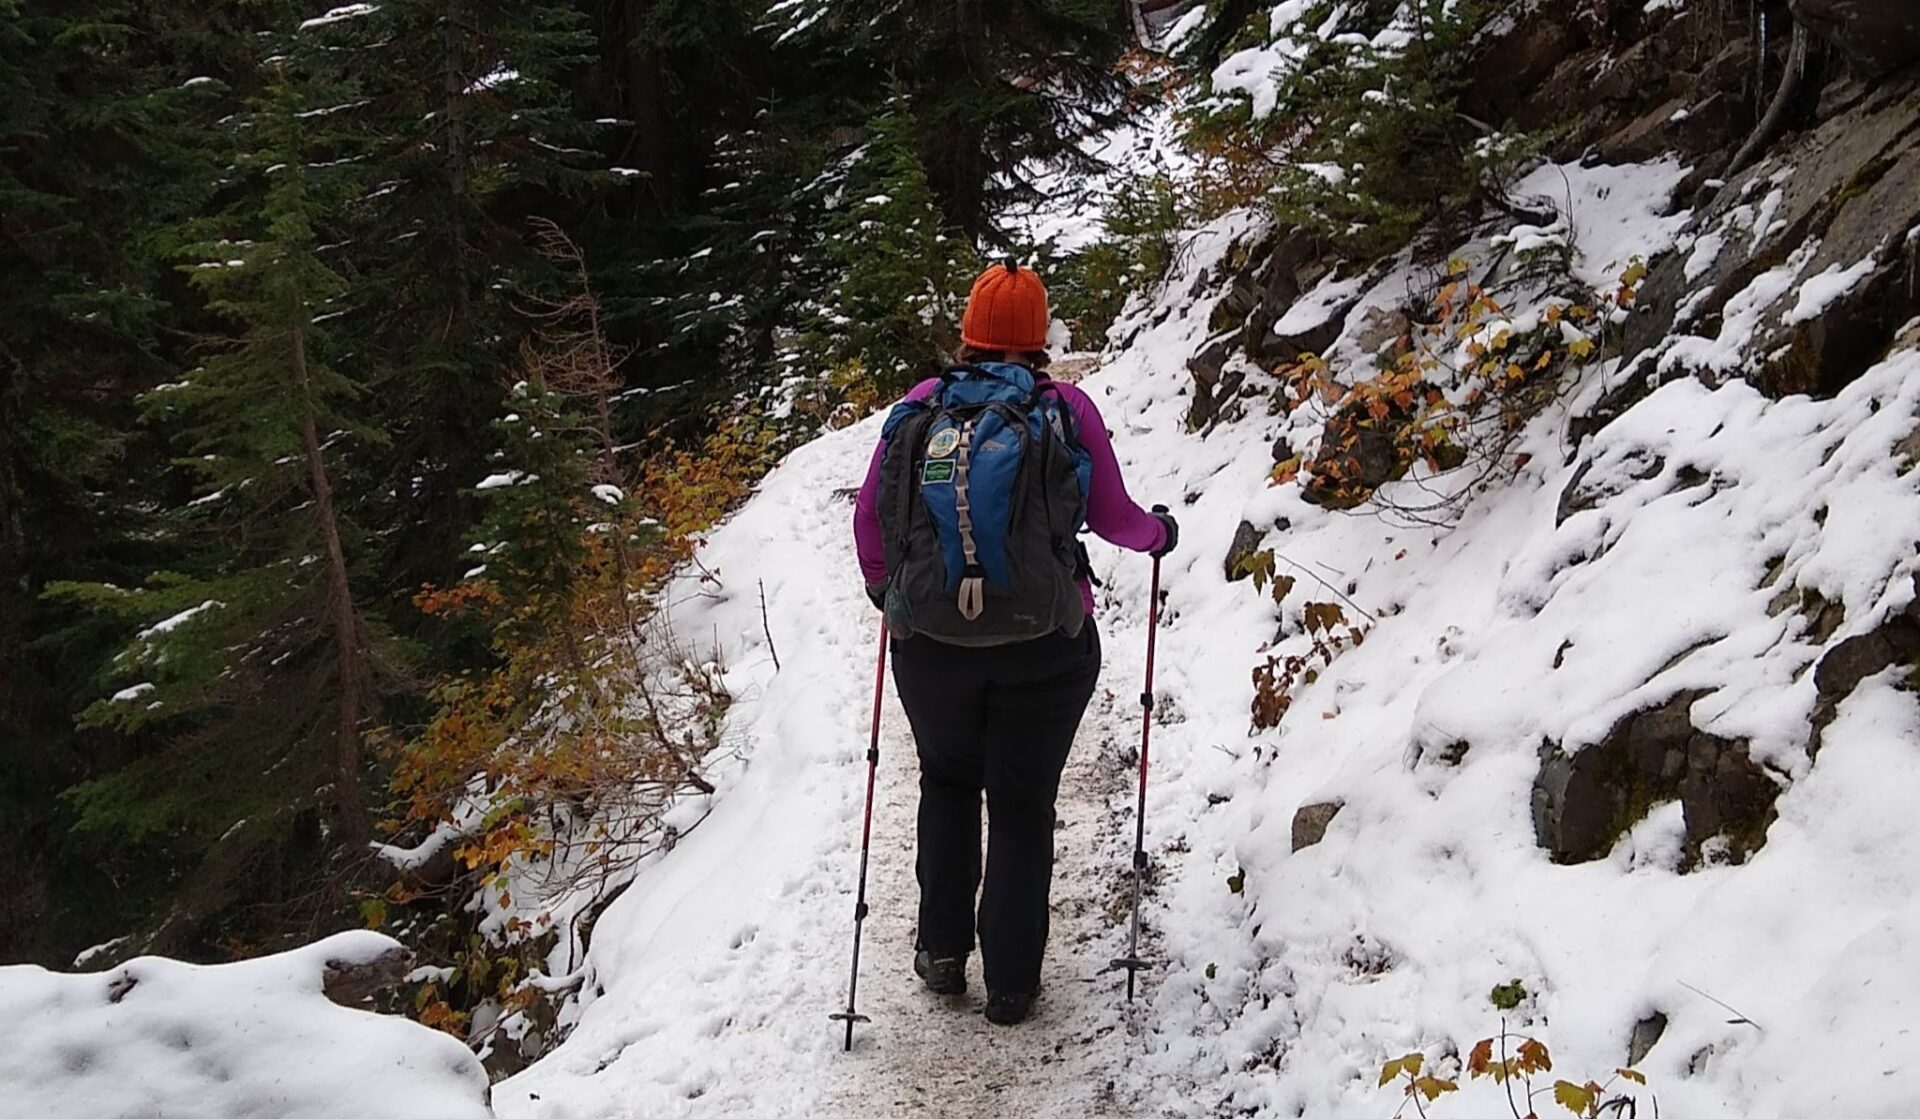 A women wearing black hiking pants, a purple shirt, an orange hat and a blue backpack on a partially snow covered trail in the forest